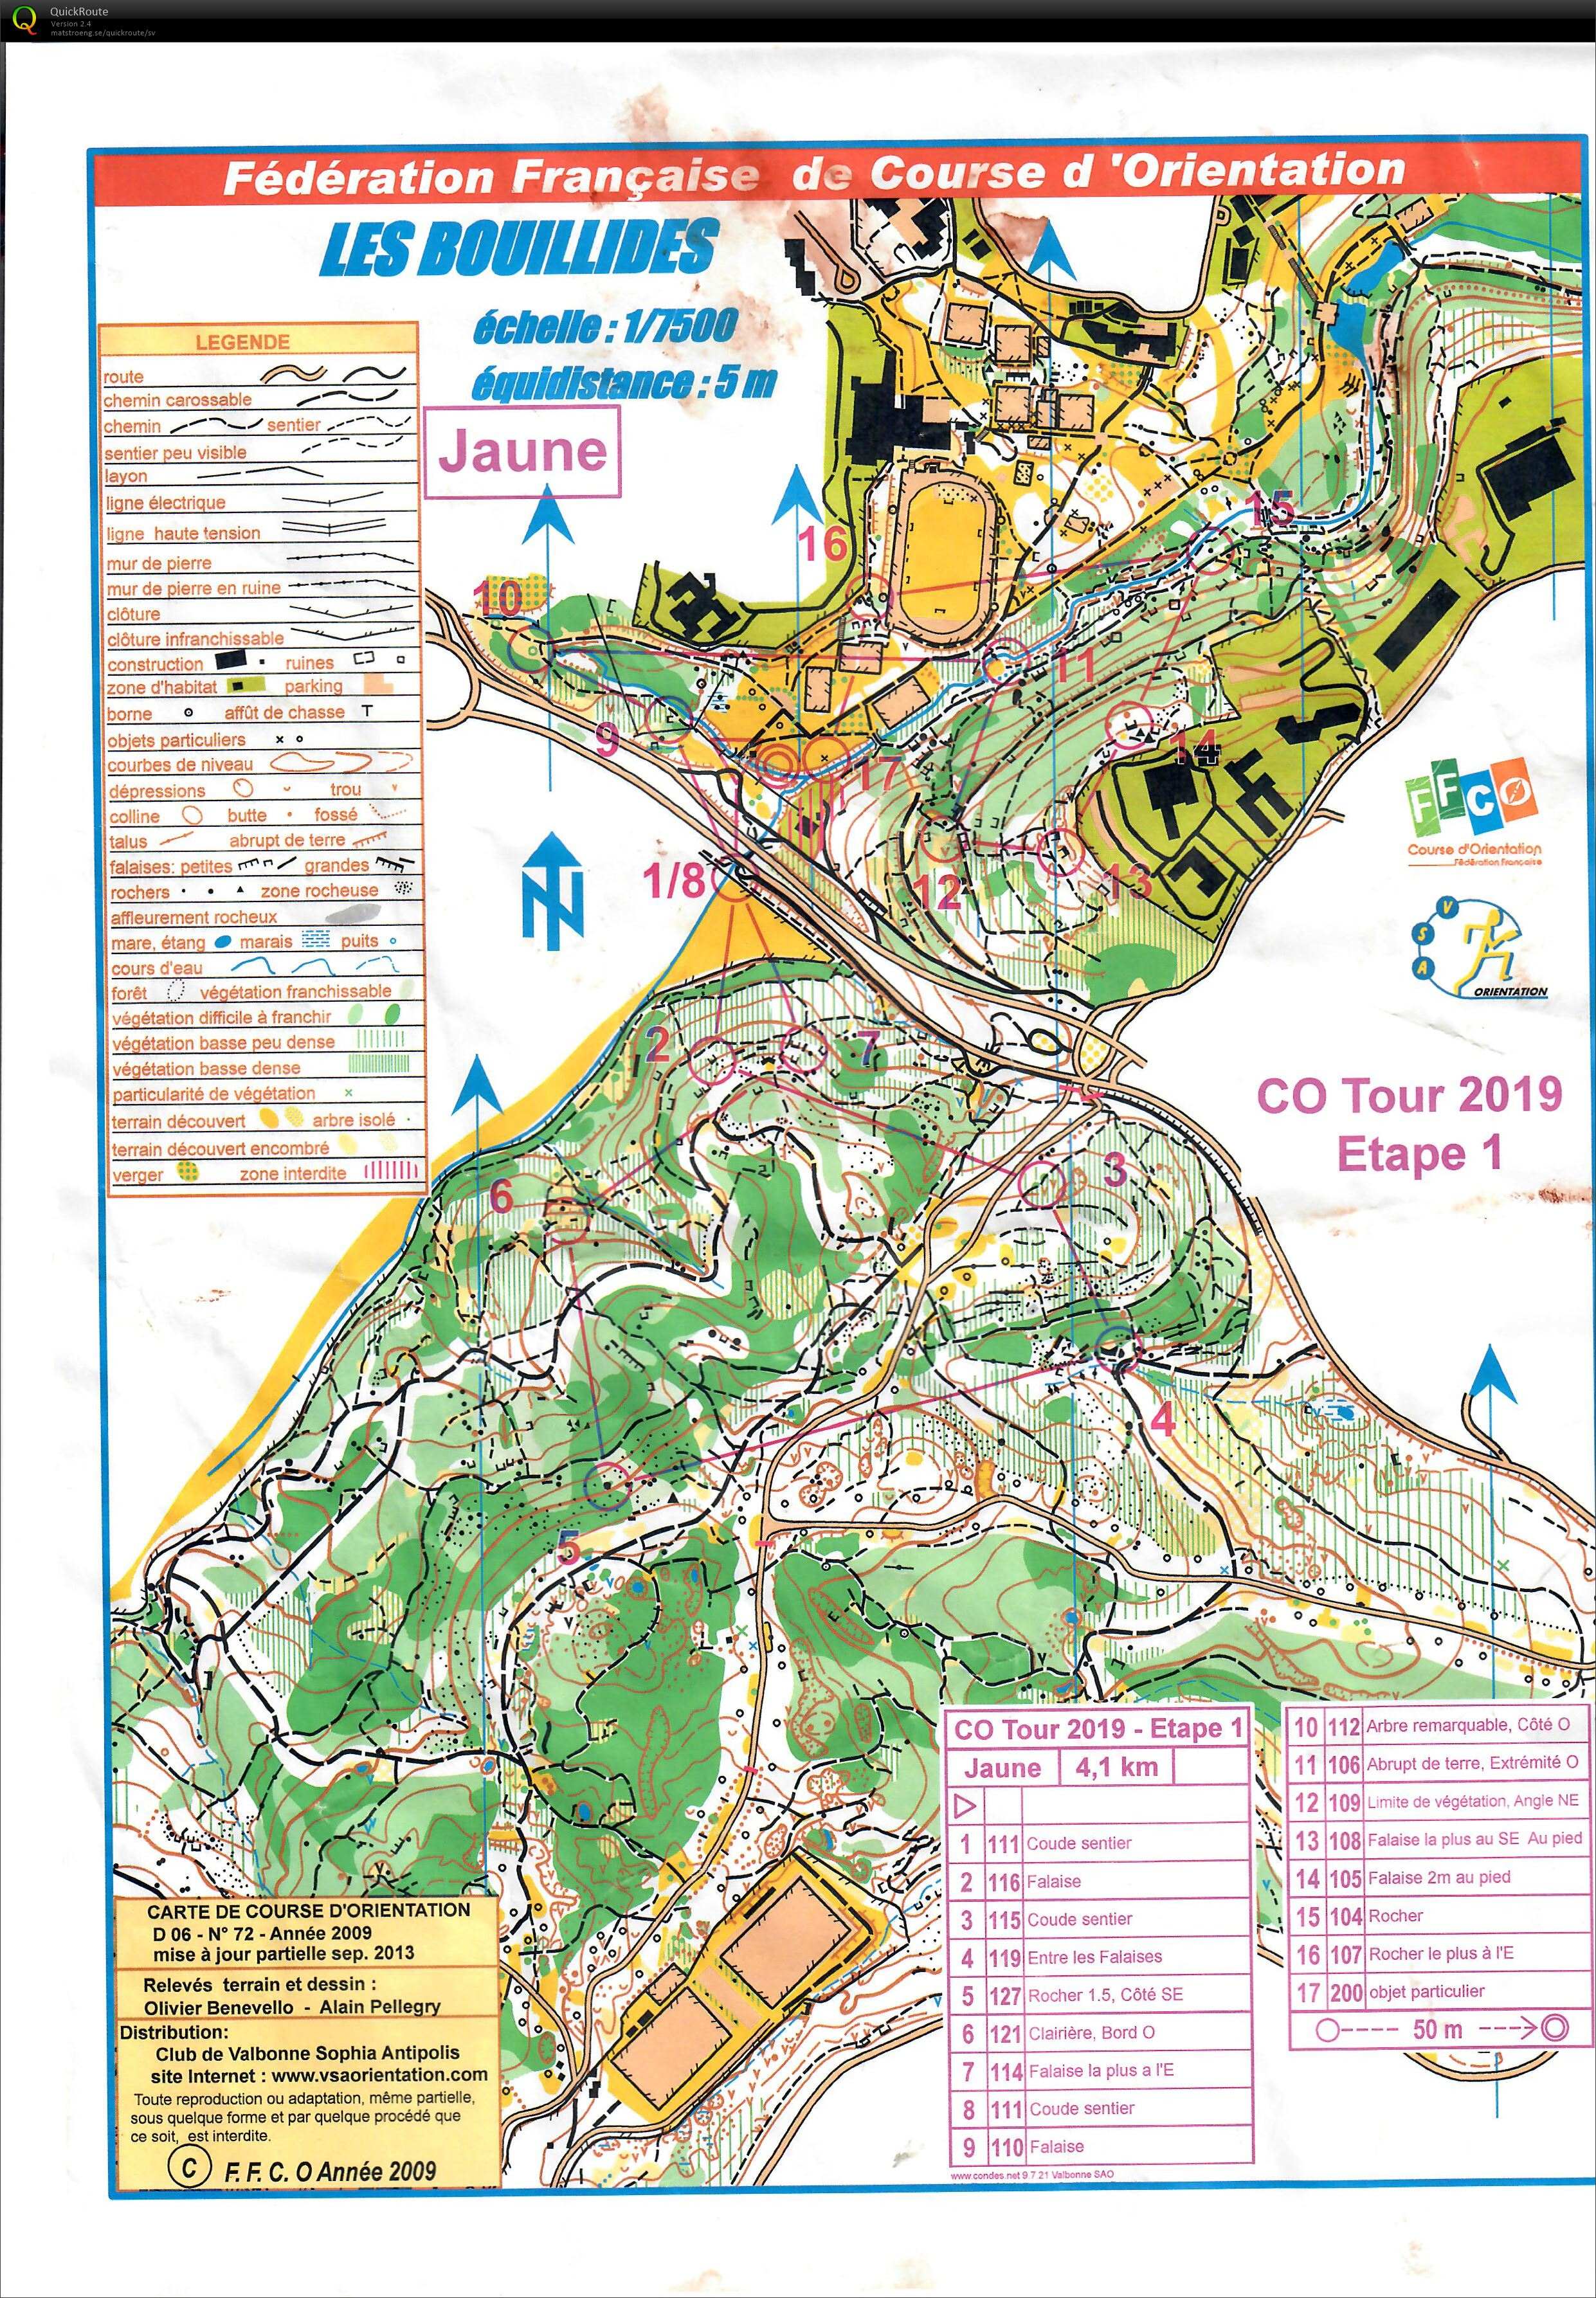 CO Tour 1/5 - May 23rd 2019 - Orienteering Map from Lotta